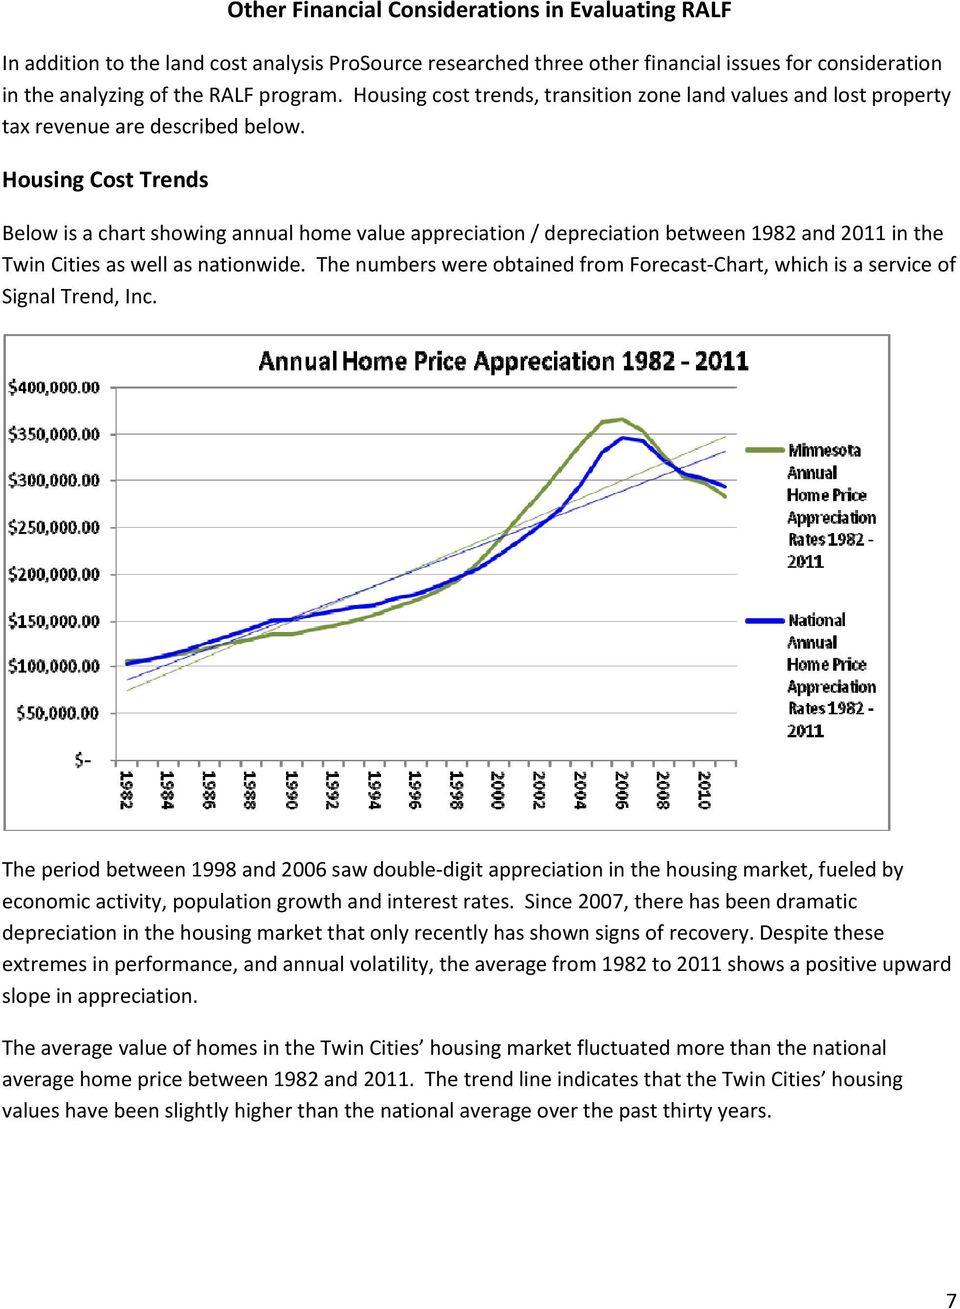 Housing Cost Trends Below is a chart showing annual home value appreciation / depreciation between 1982 and 2011 in the Twin Cities as well as nationwide.